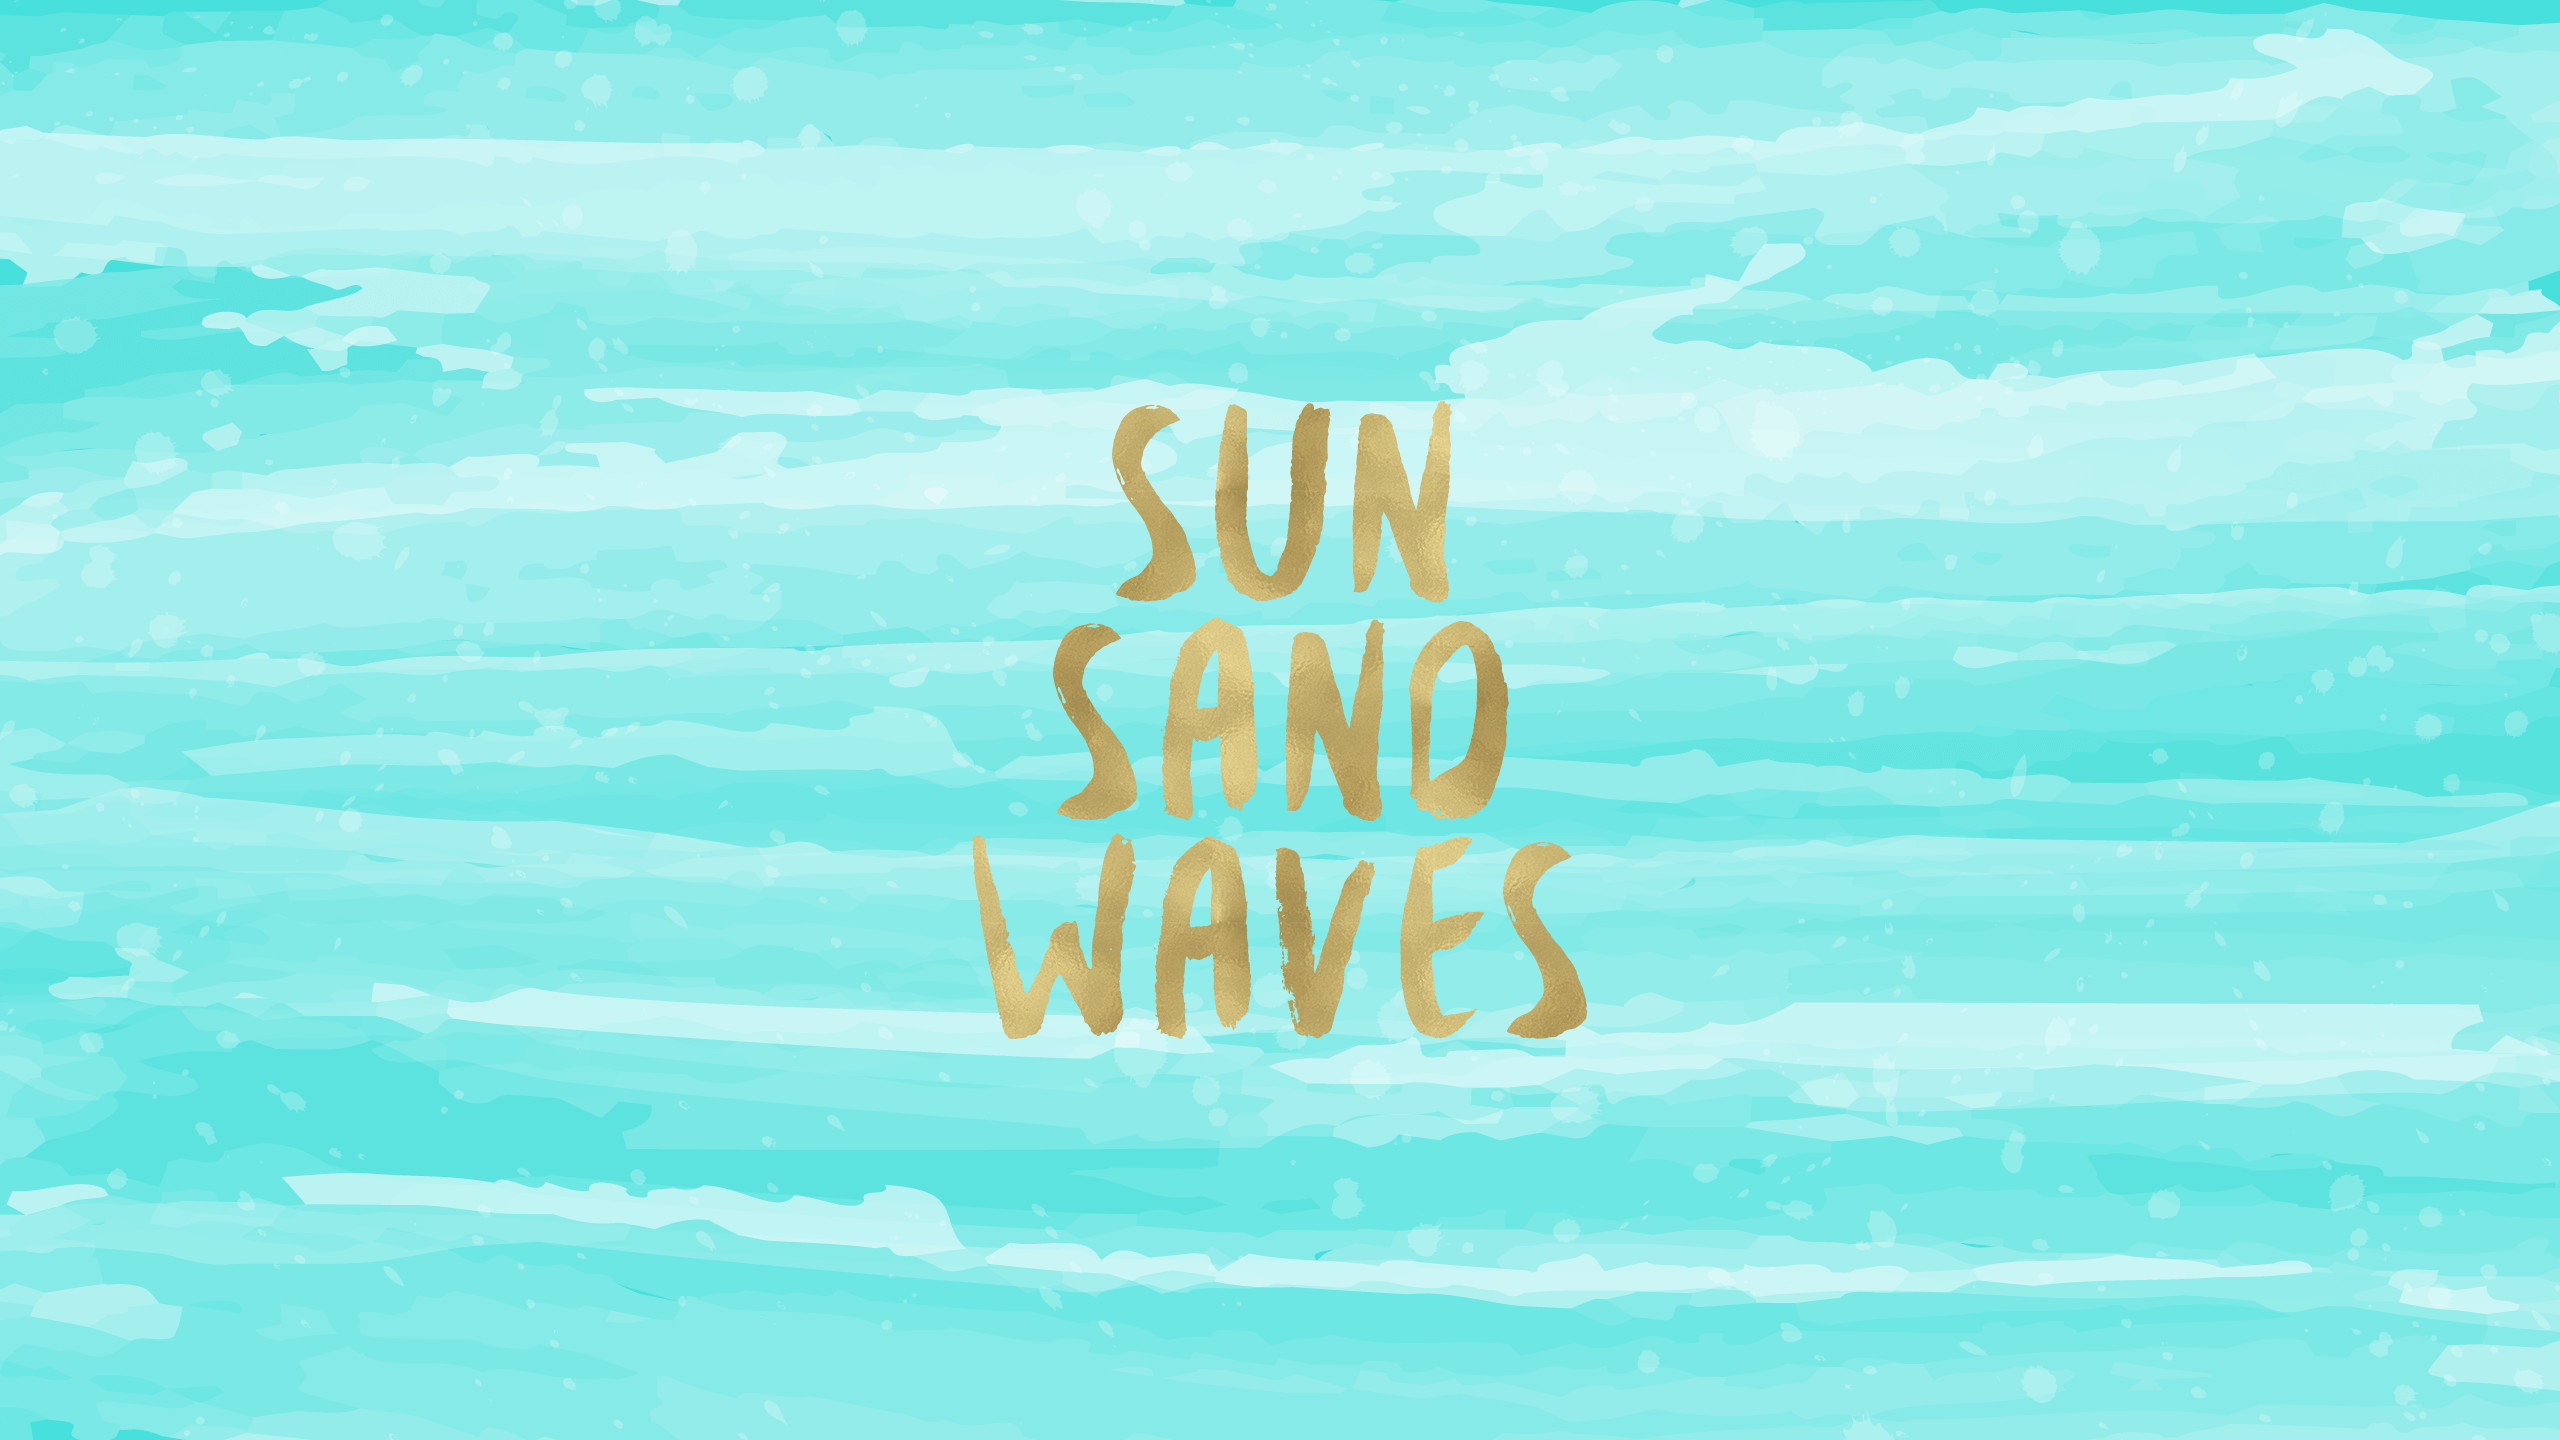 2560x1440 Sun Sand Waves Free Desktop Wallpaper